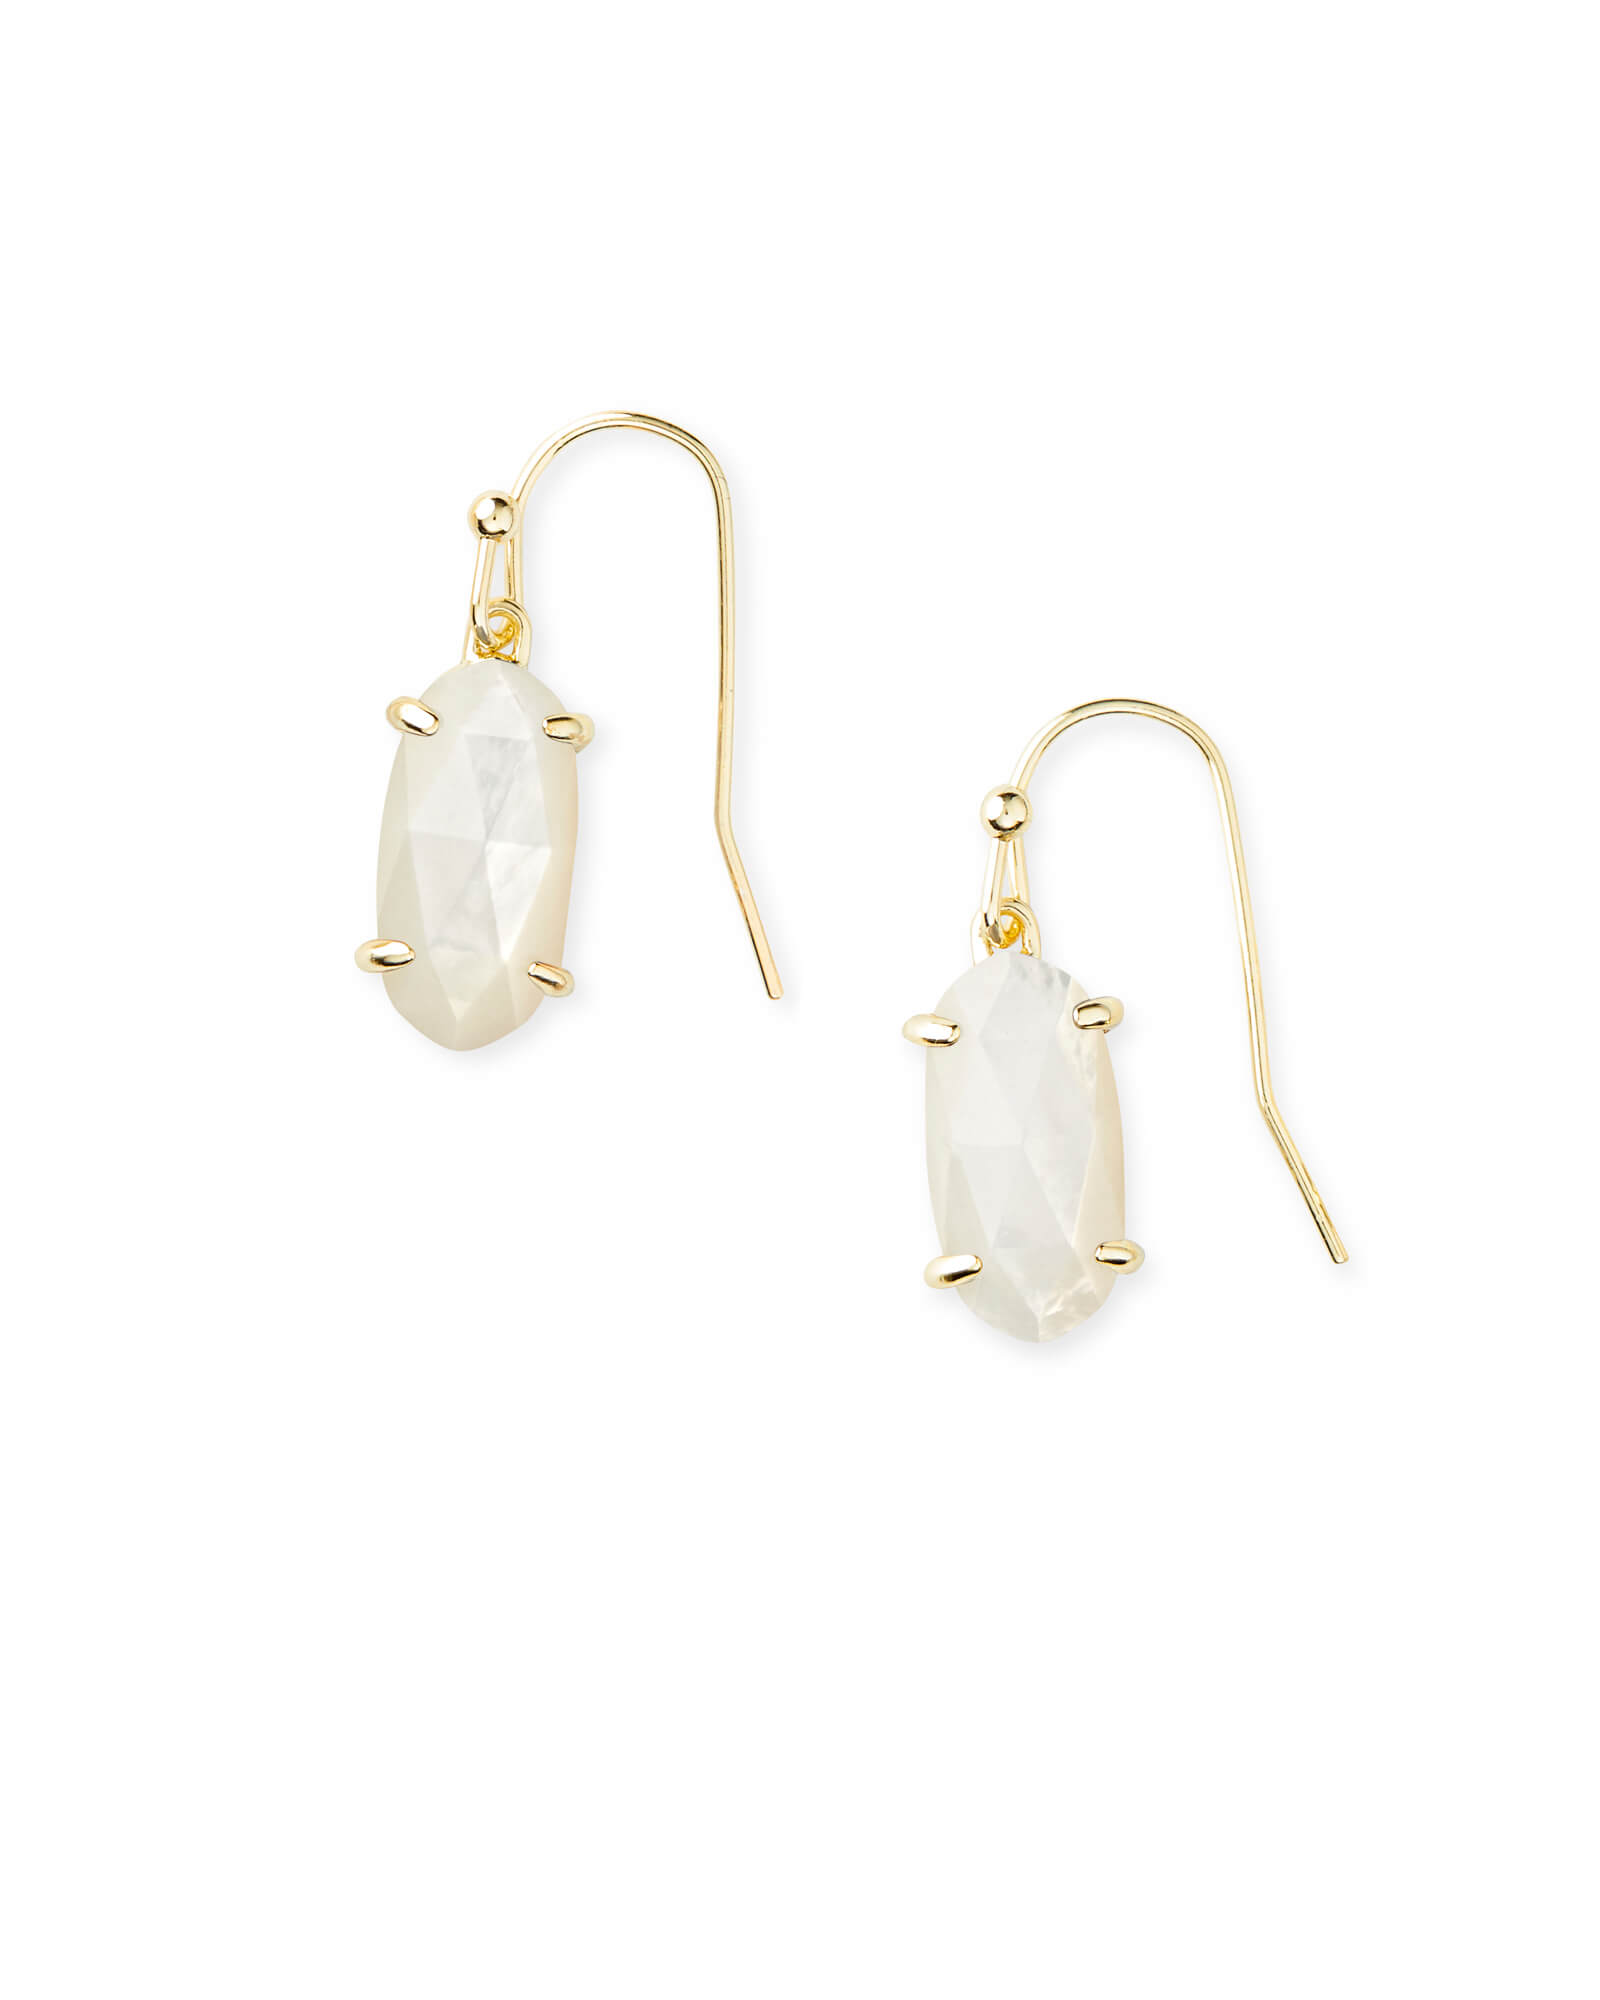 Lemmi Gold Drop Earrings in Ivory Pearl